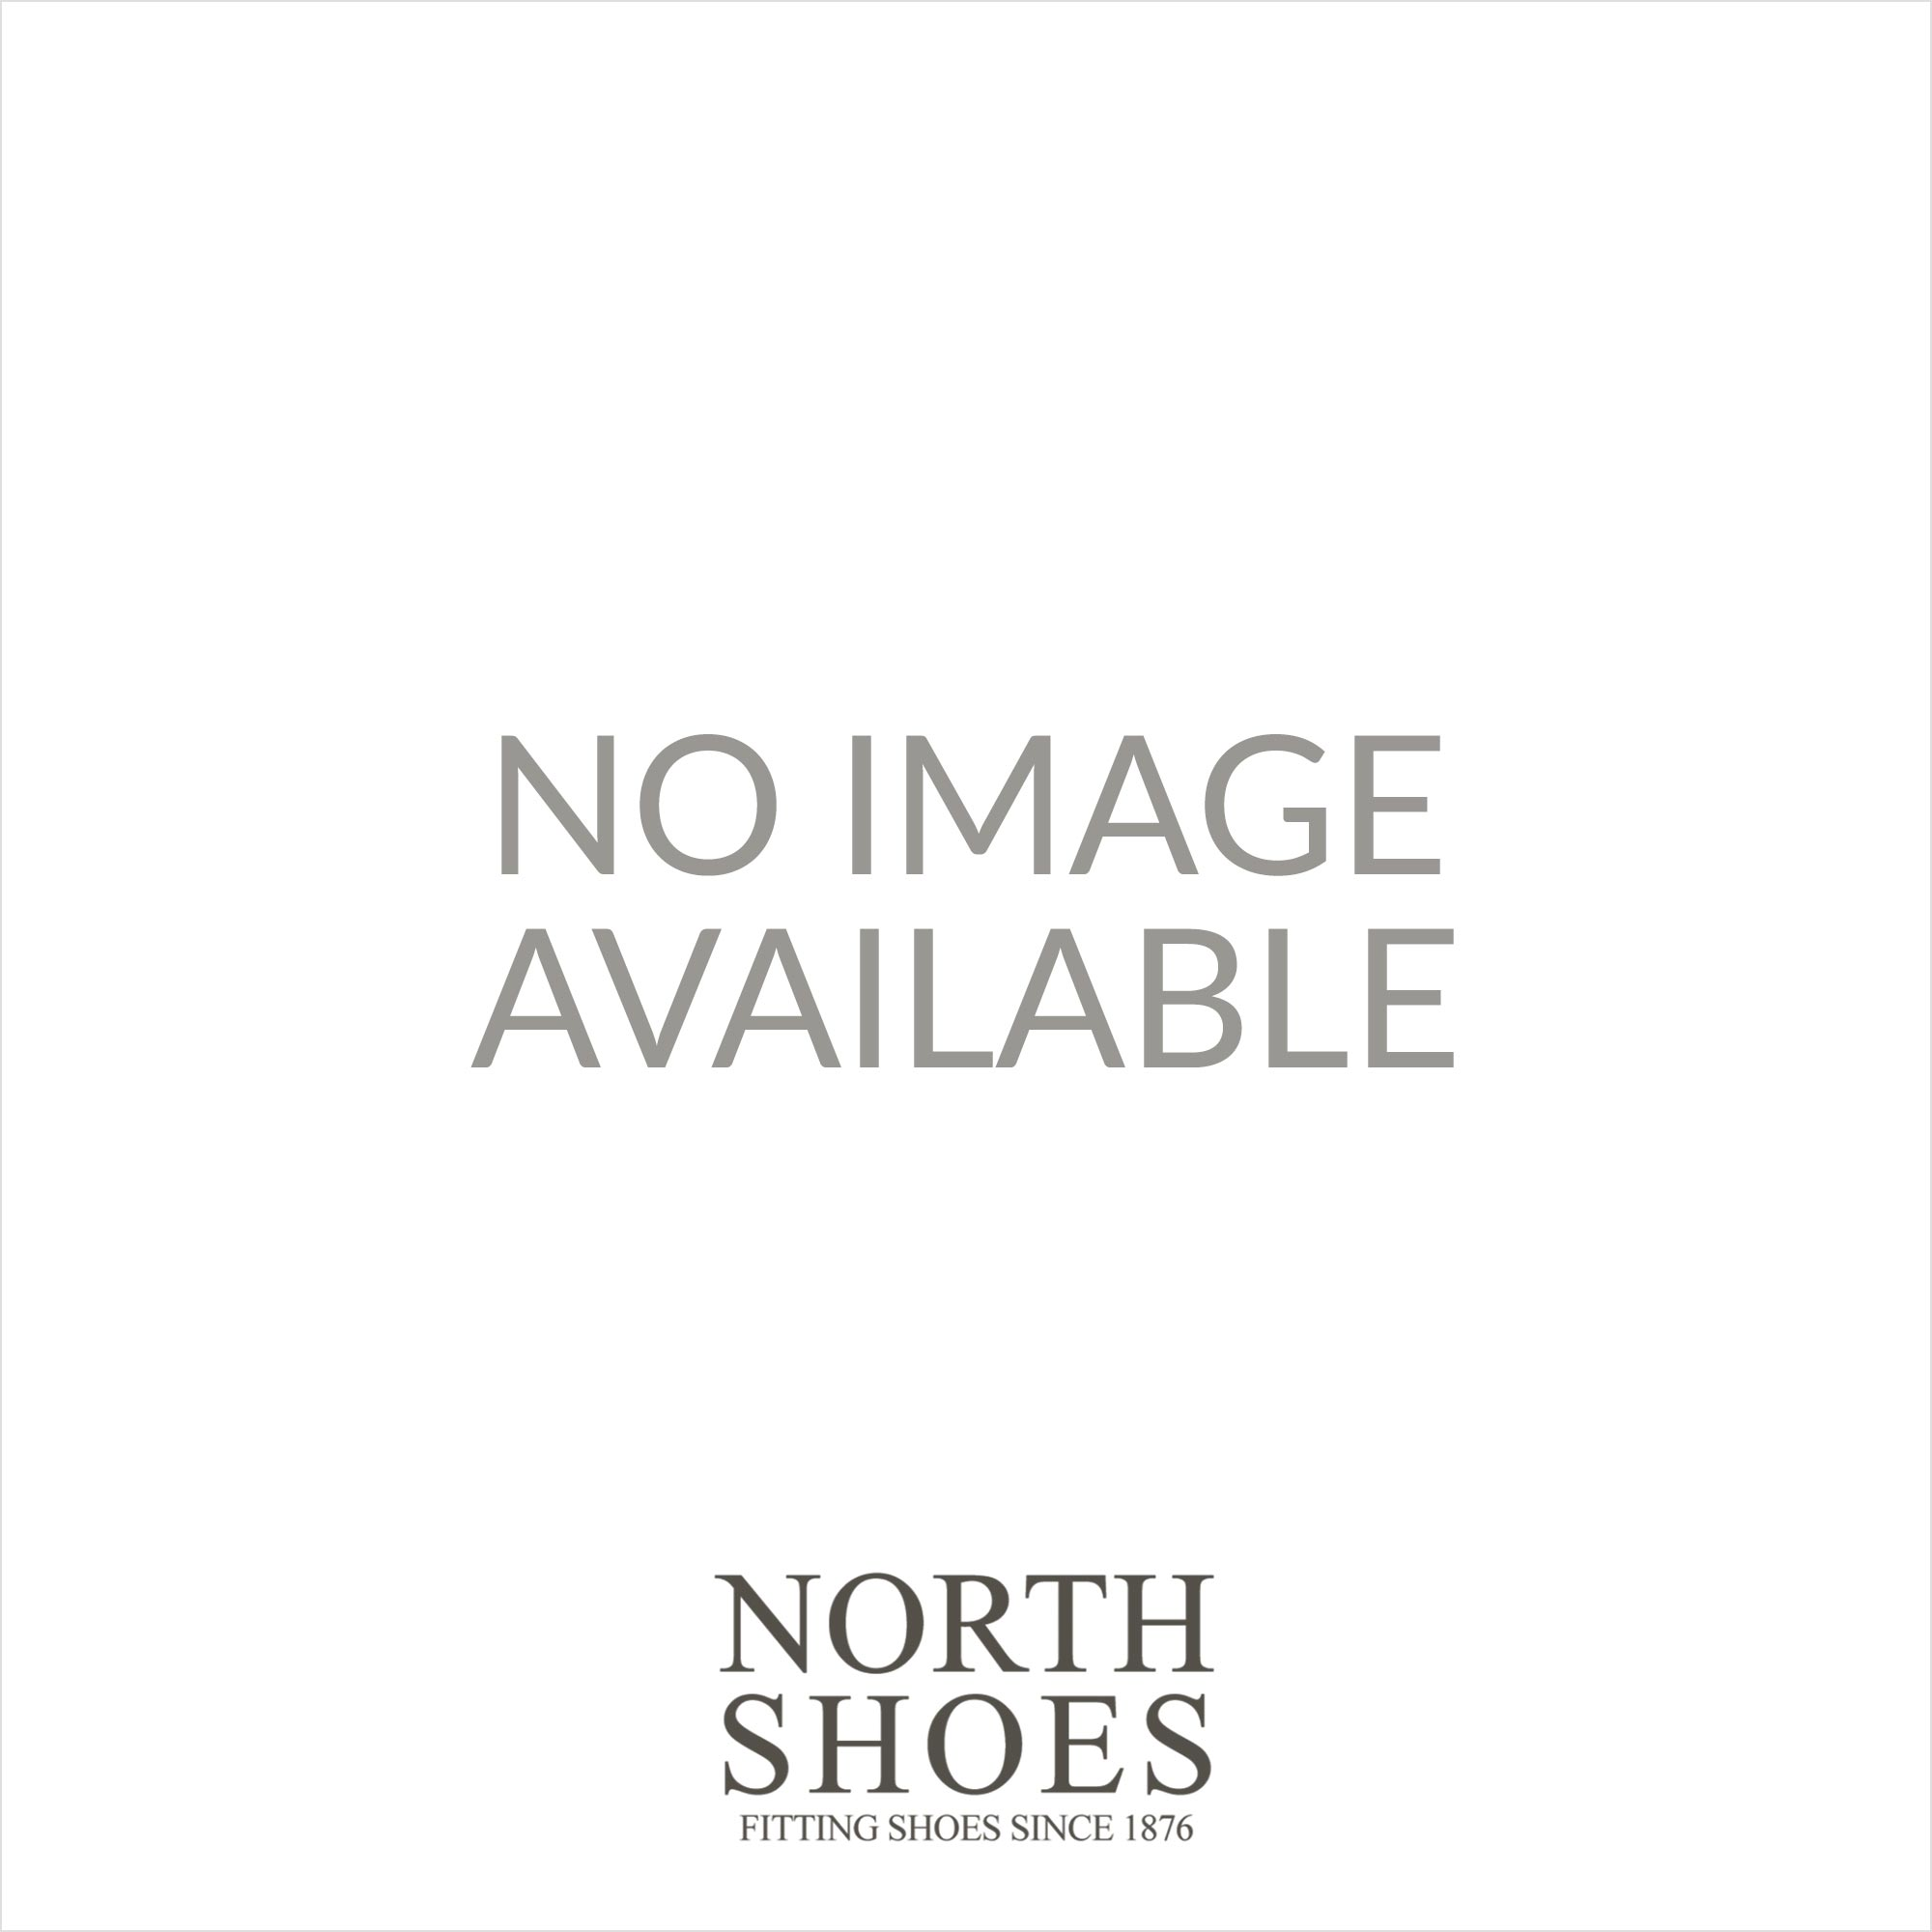 97375L Black Knitted Mesh Boys Lace Up Casual Trainer Shoe